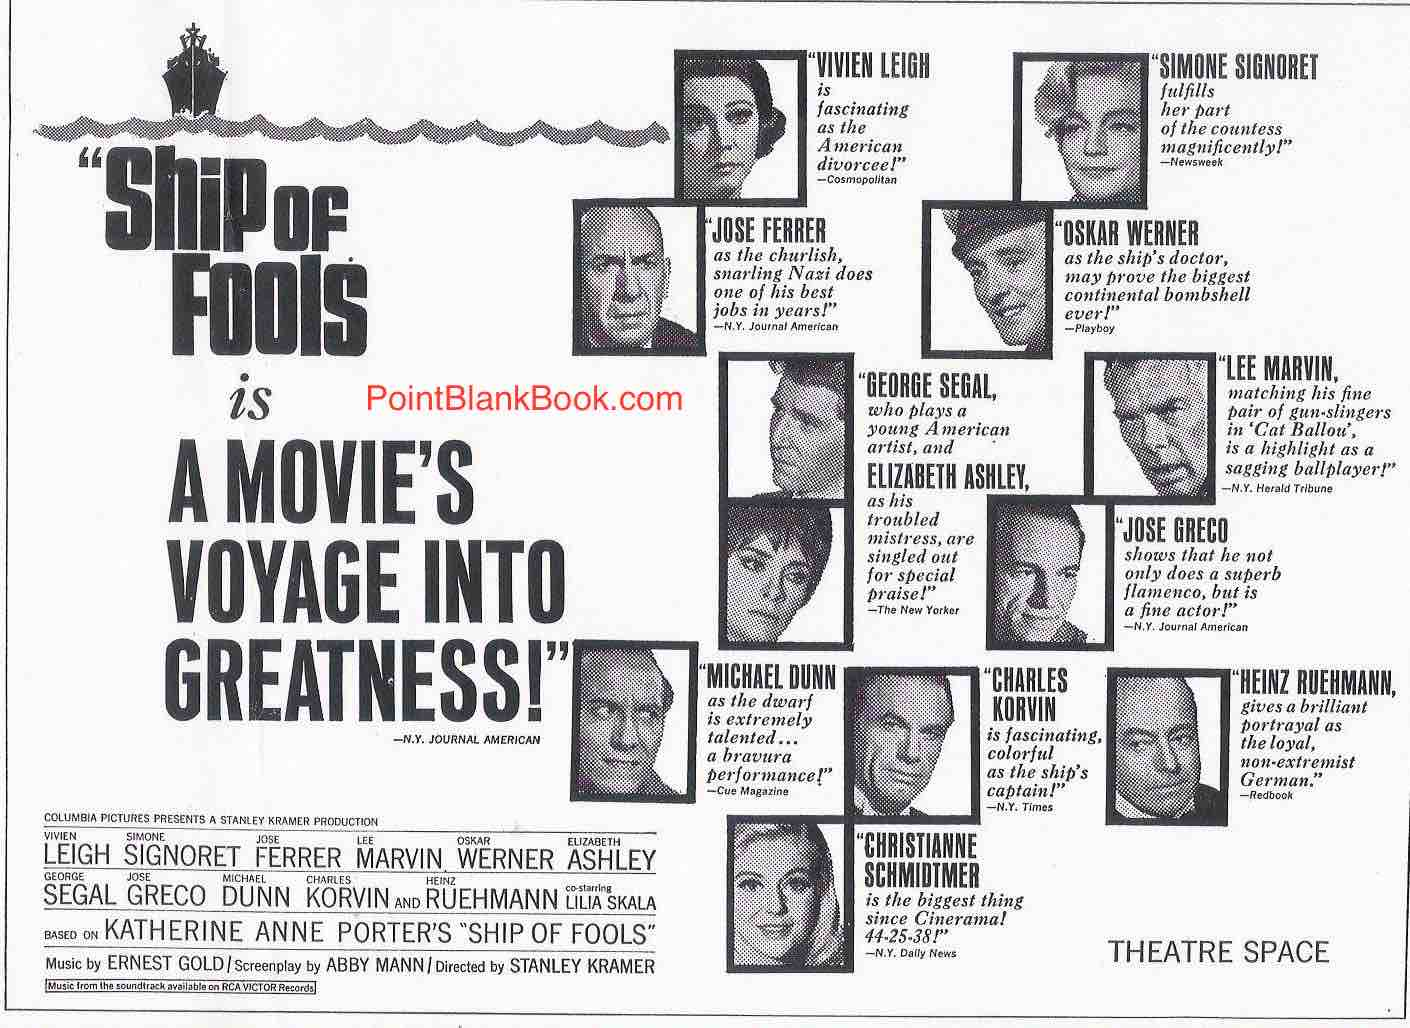 Original ad for Ship of Fools with critics praising the individual performances, even if Christianne Schmidtmer's is a little less lofty.